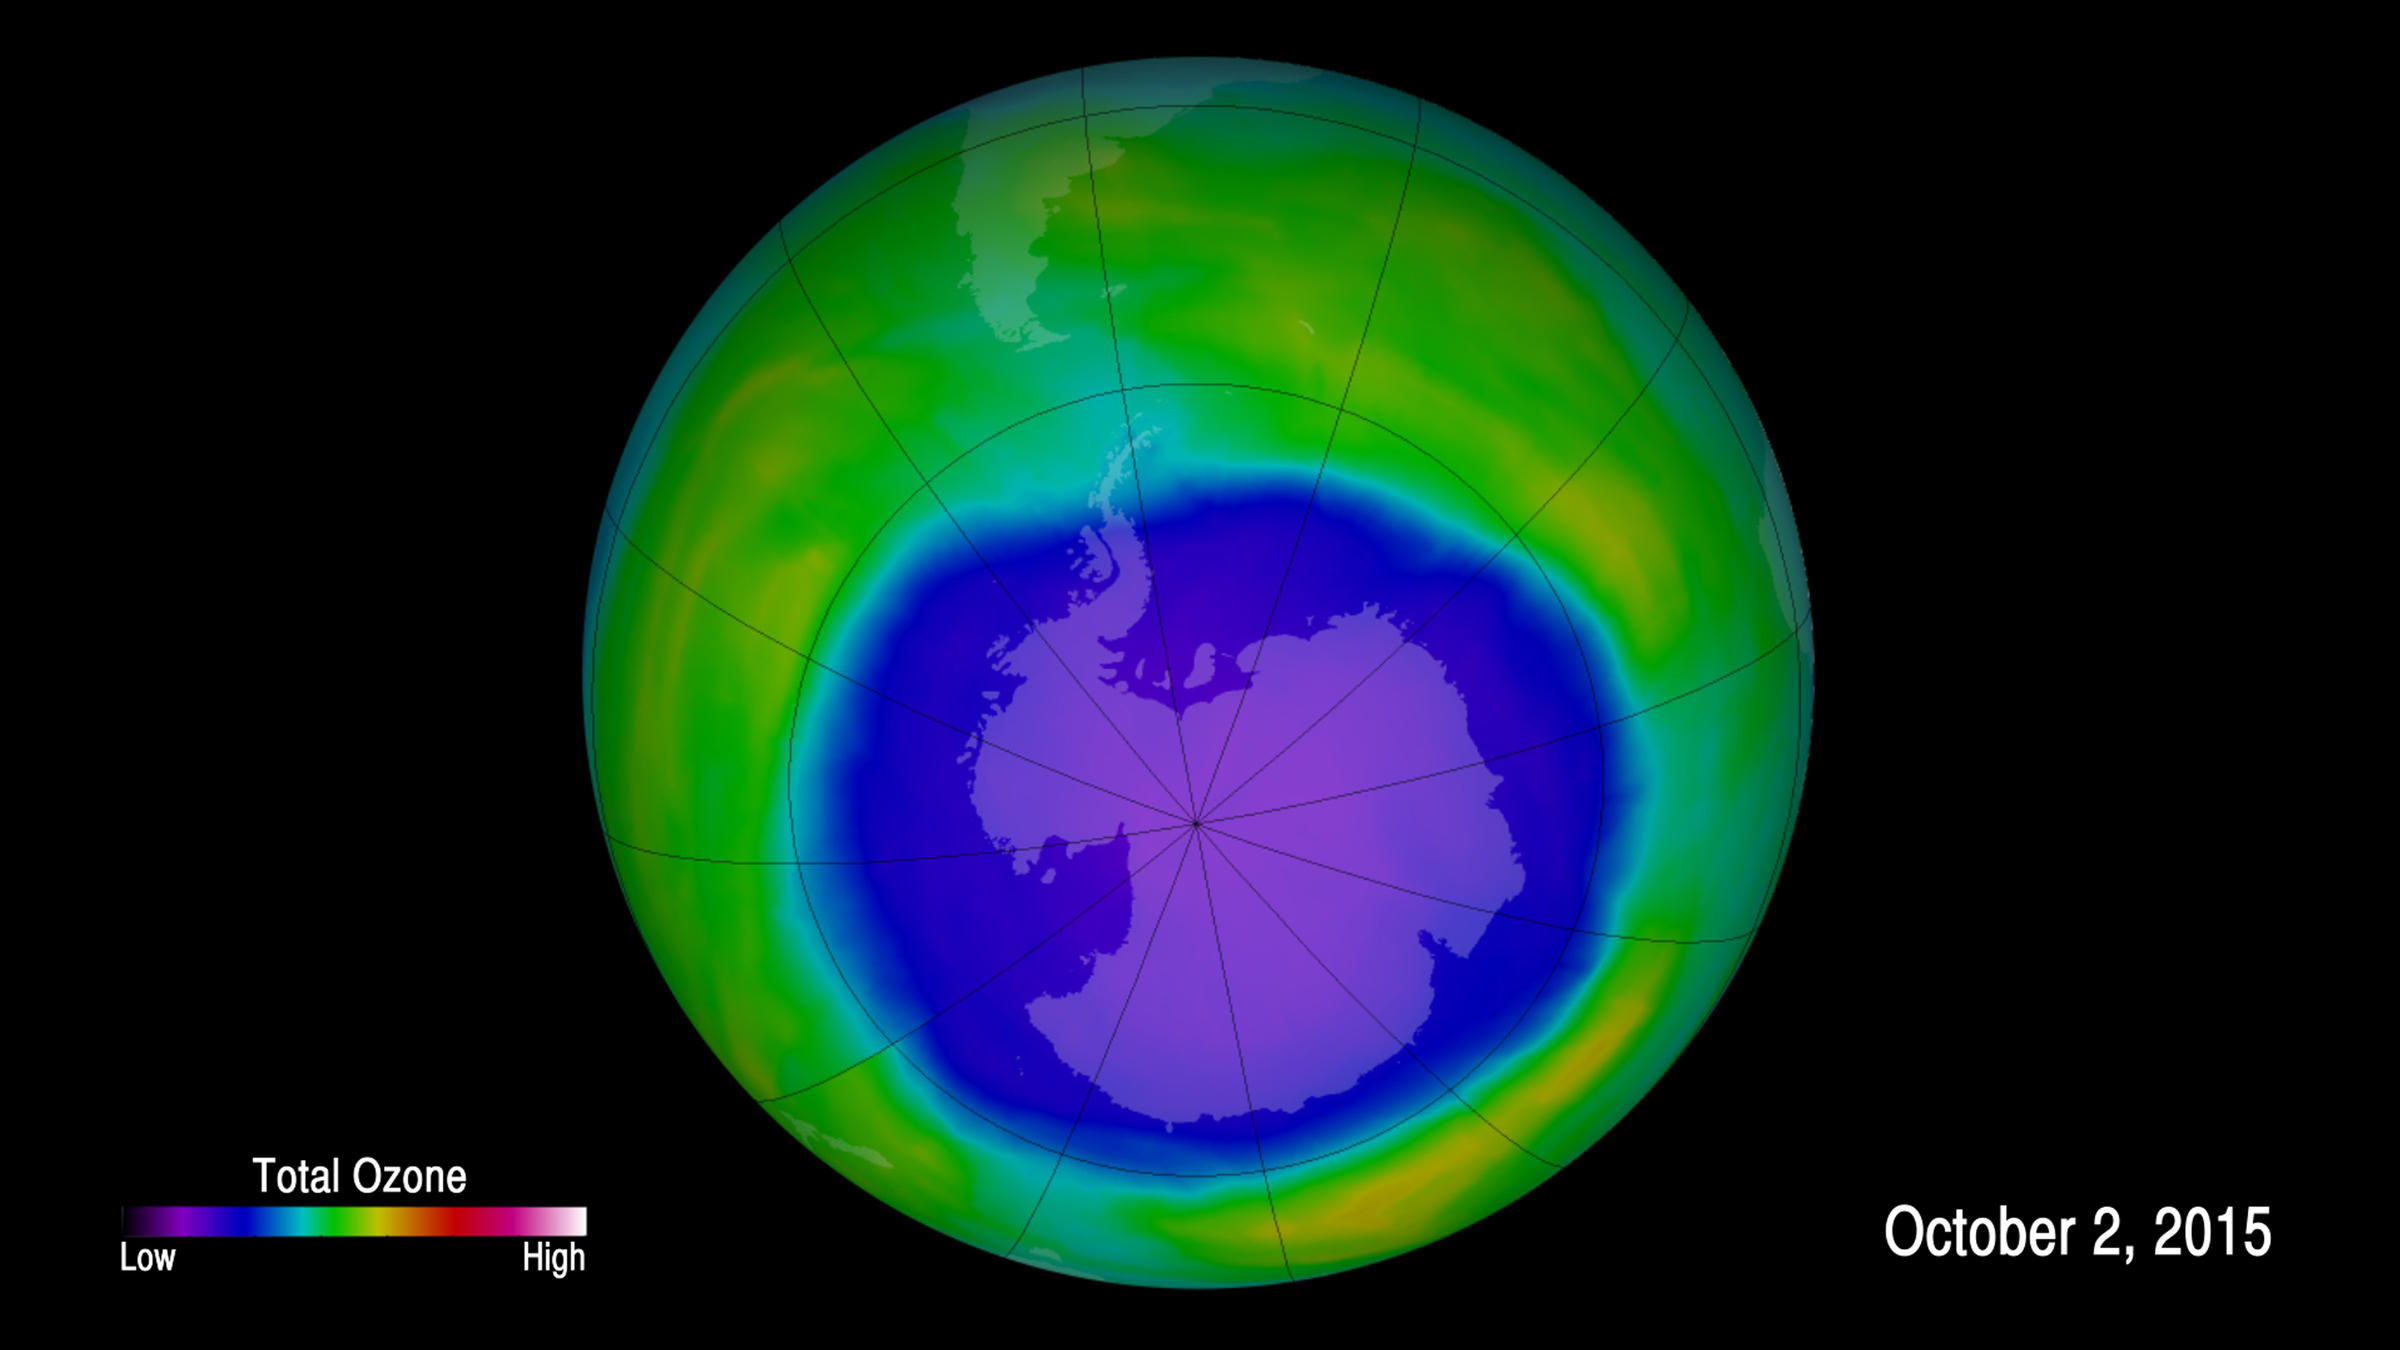 An image provided by NOAA shows the hole in the ozone layer in 2015. NOAA scientists now say emissions of one ozone-depleting chemical appear to be rising even though the chemical has been banned and reported production has essentially been at zero for